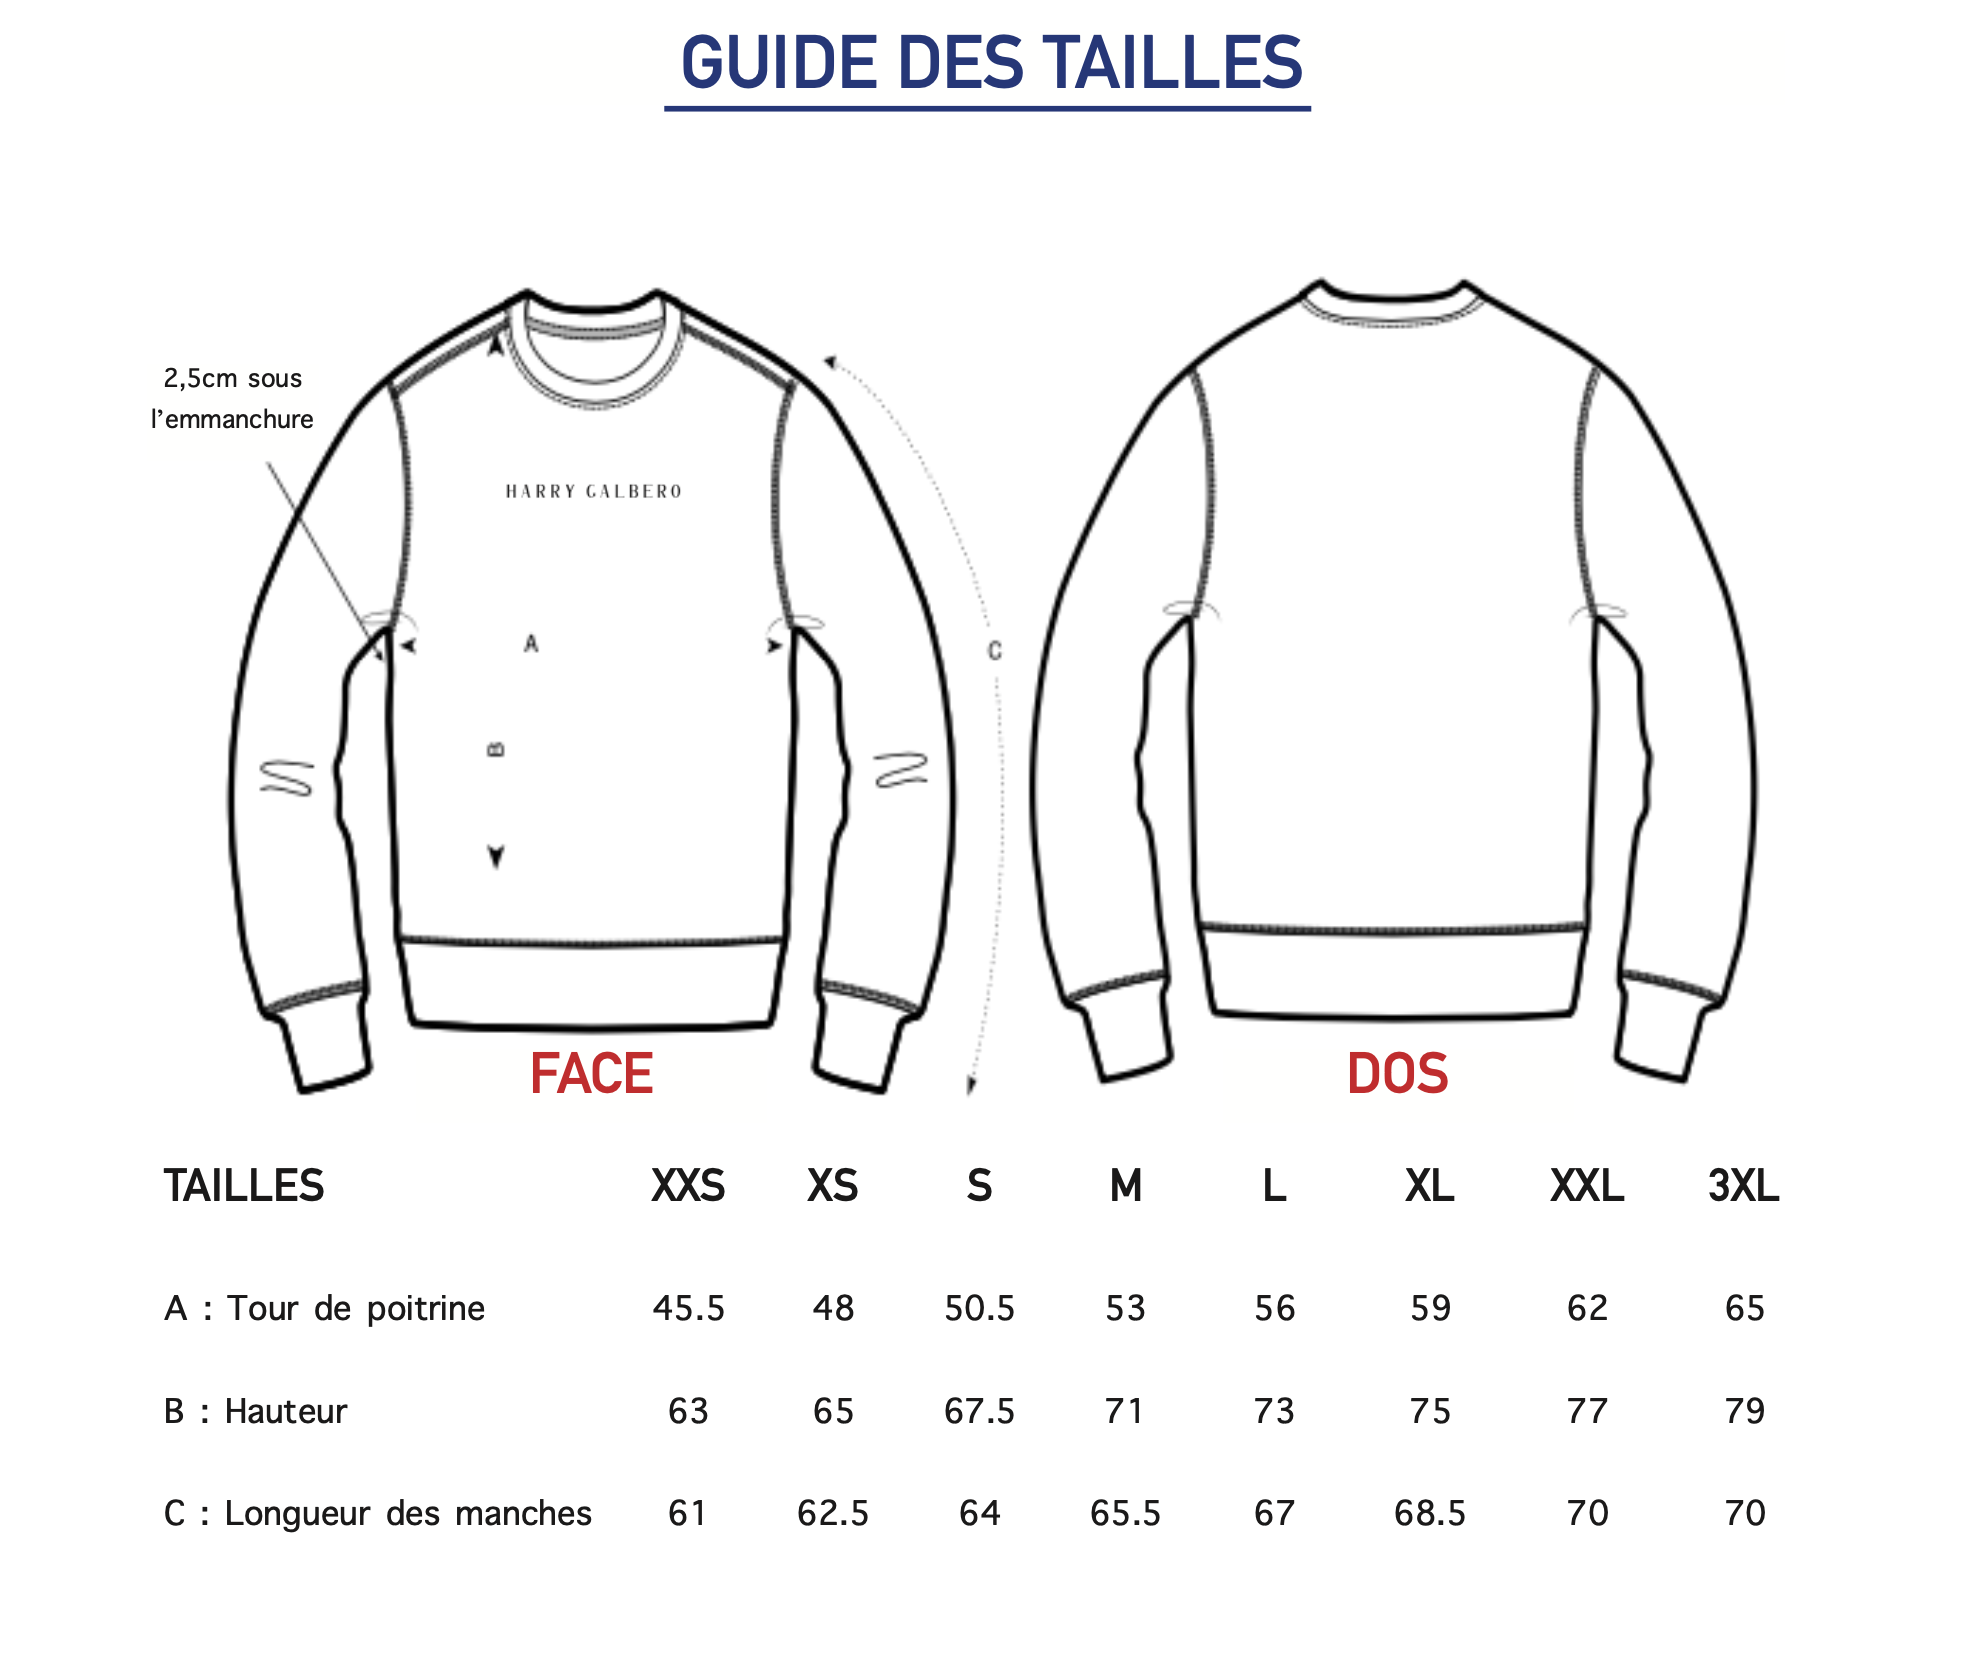 Guide des tailles Sweat Summer Homme Harry Galbero